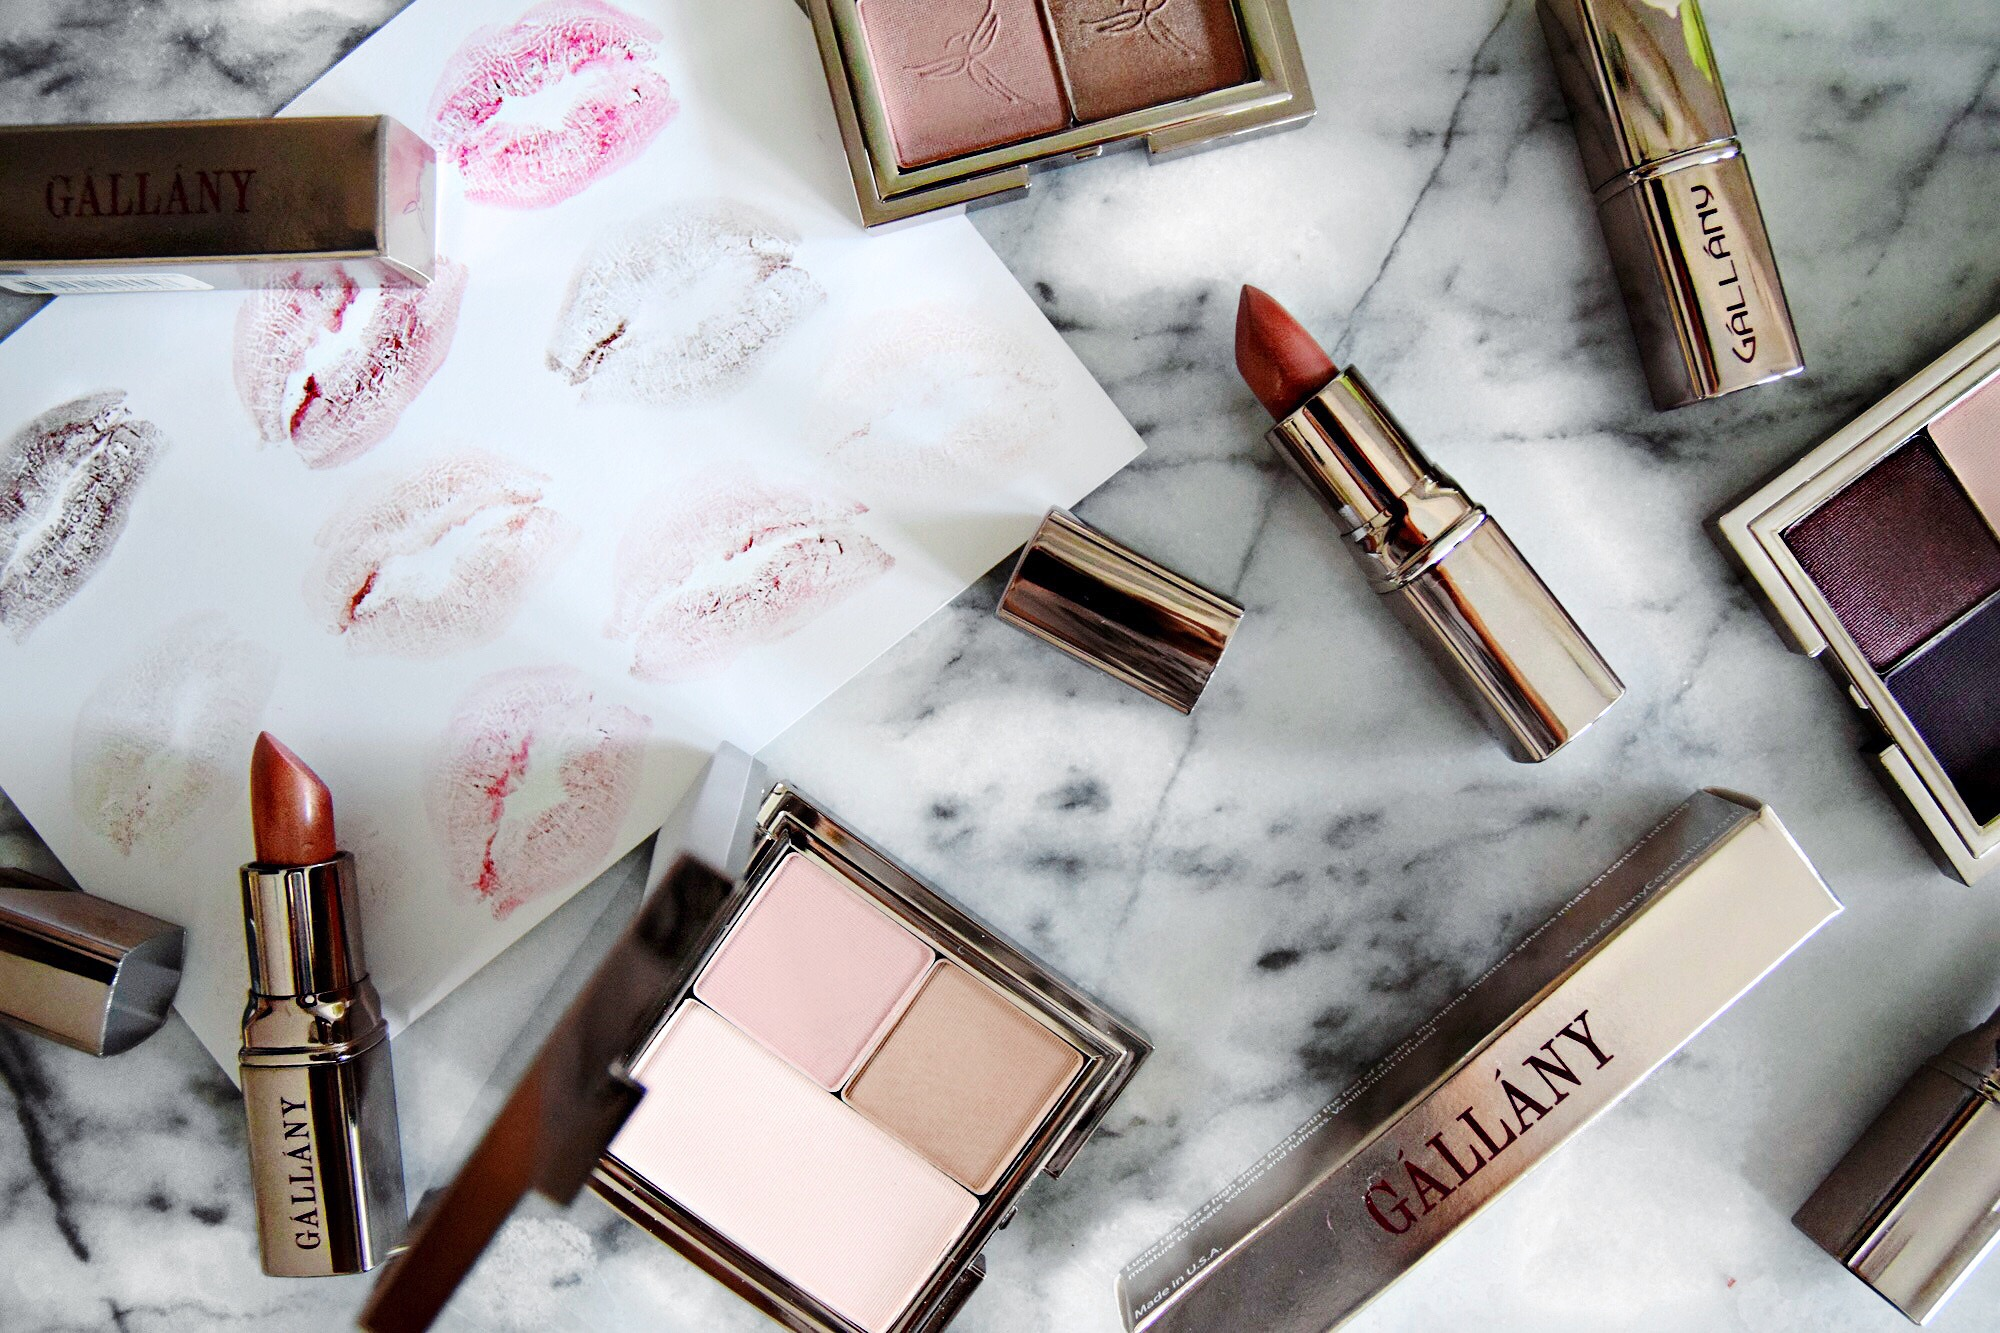 Gallany Cosmetics // On My Vanity Blog Series // Beauty, Makeup and Skincare // Los Angeles Fashion Blogger Daphne Blunt: To Style, With Love